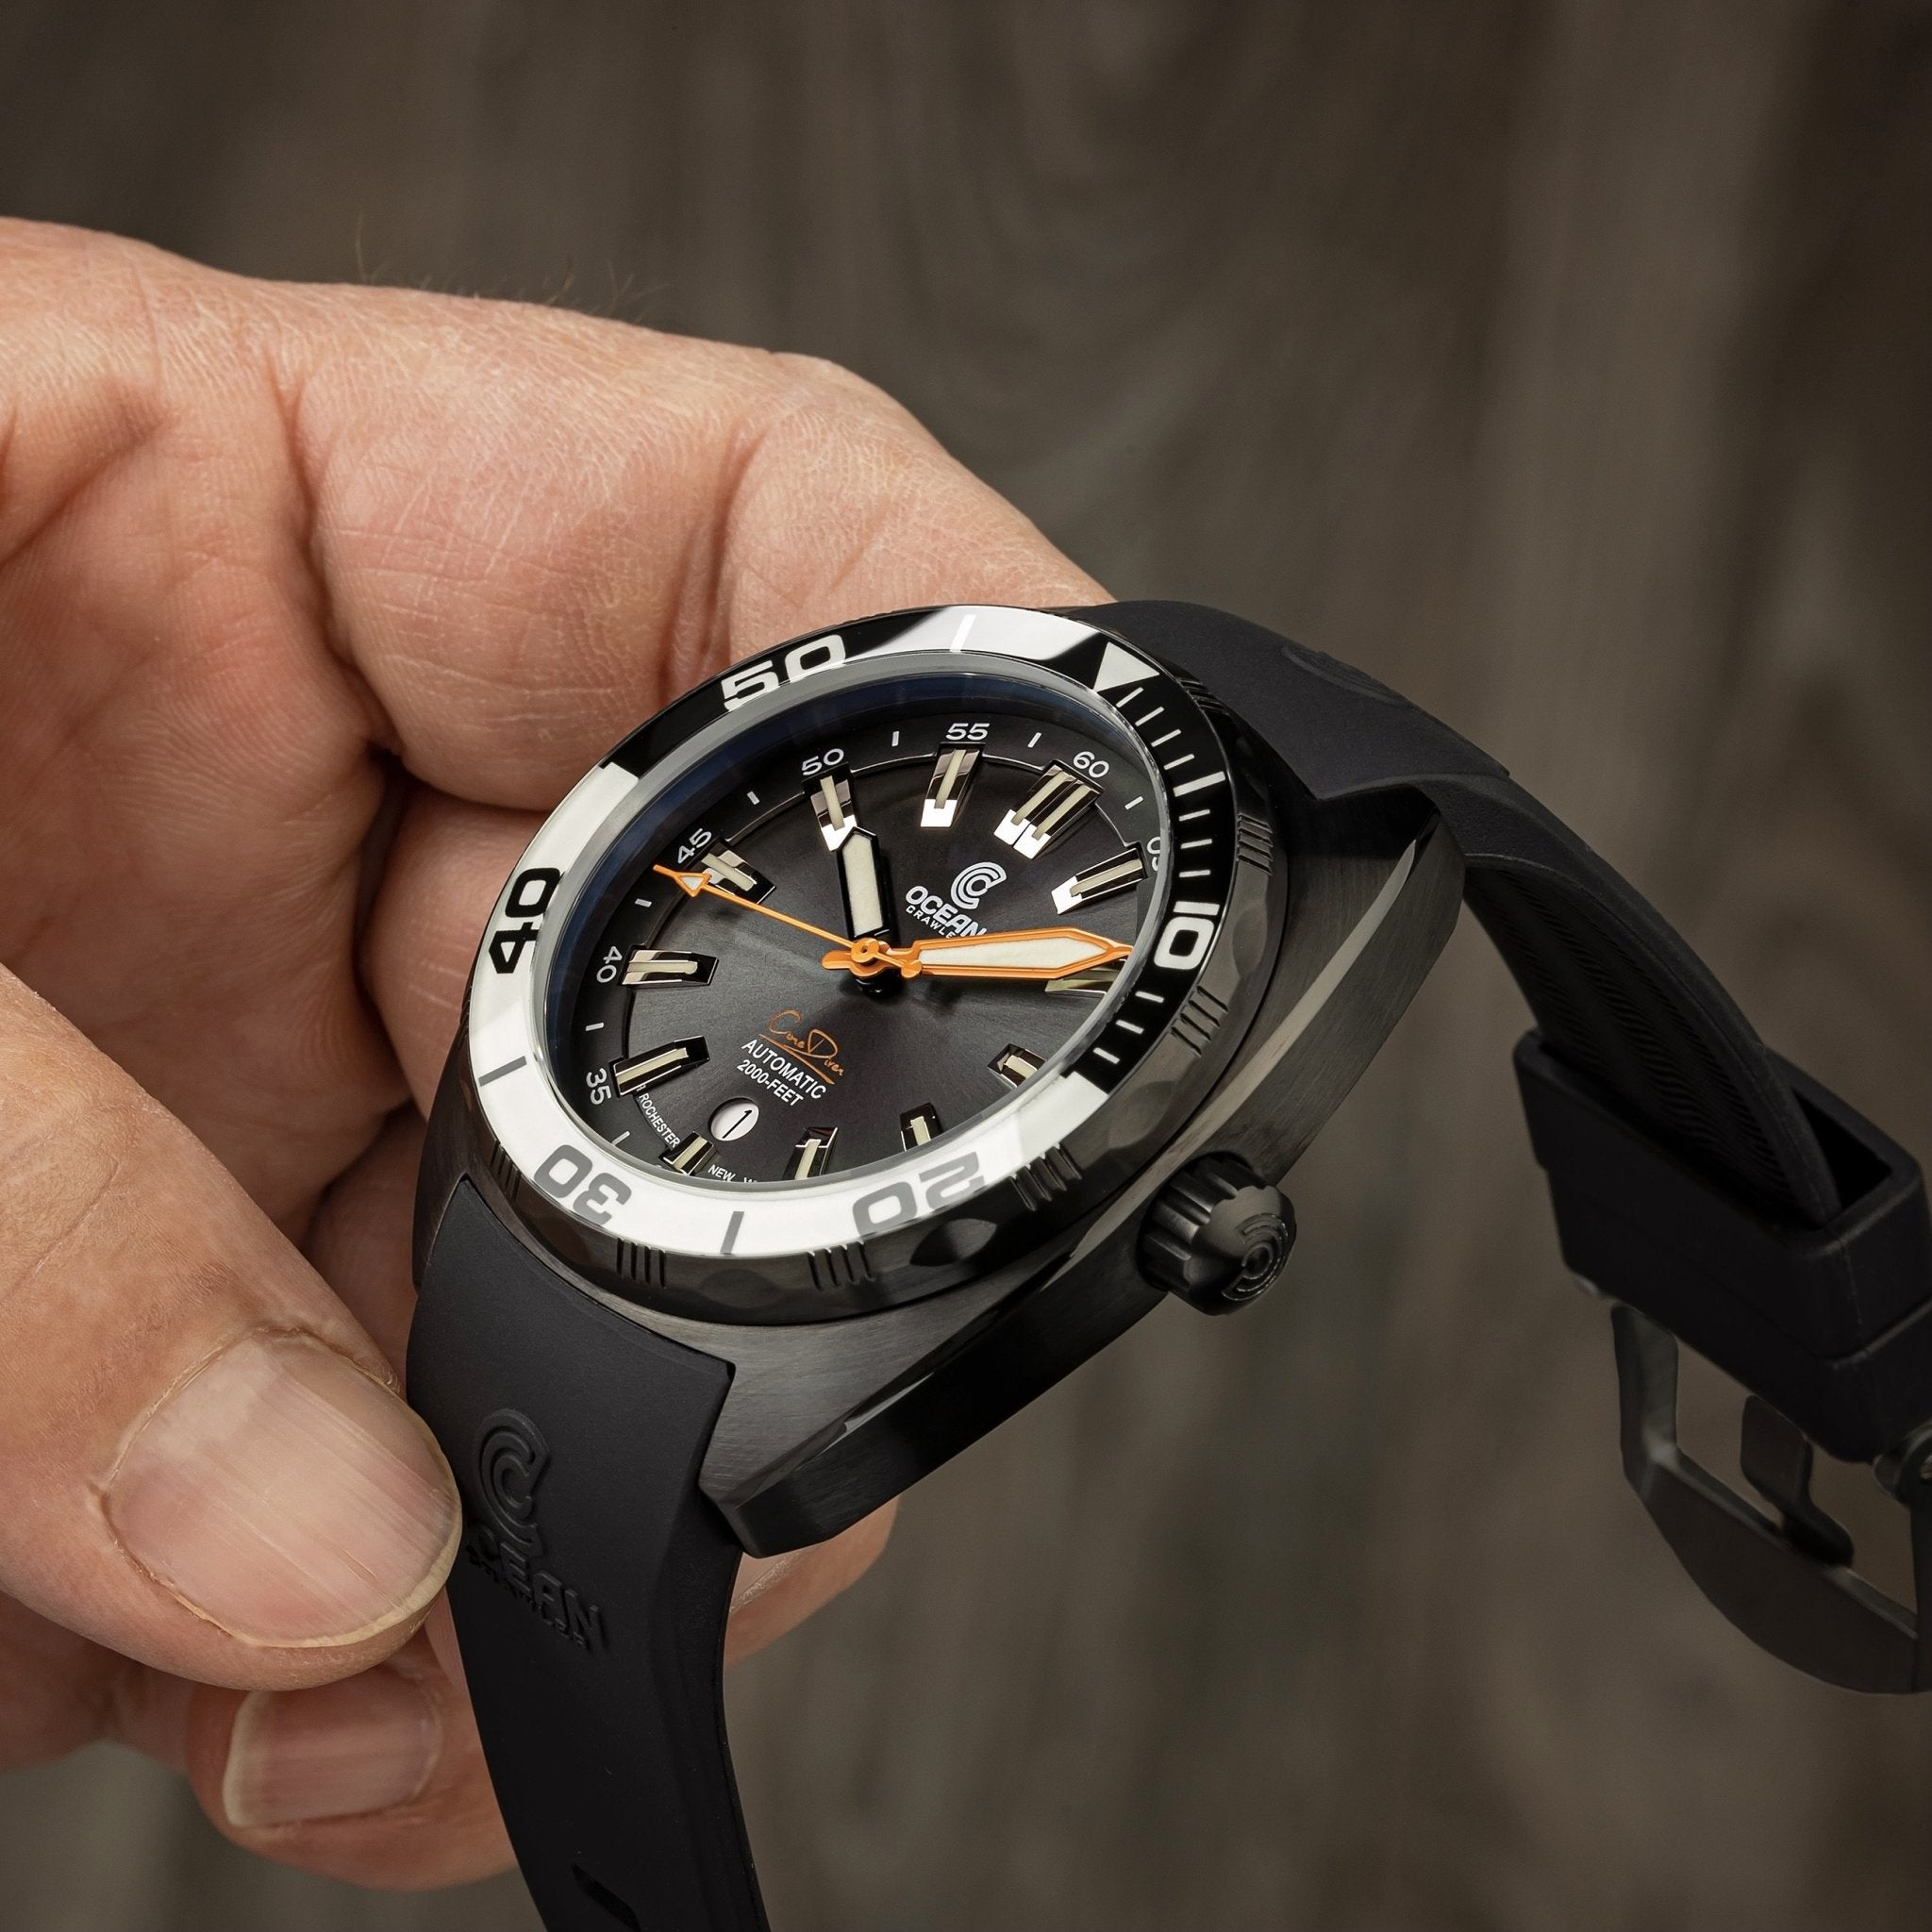 Ocean Crawler Core Diver - Black/White DLC - Preorder - Ocean Crawler Watch Co.